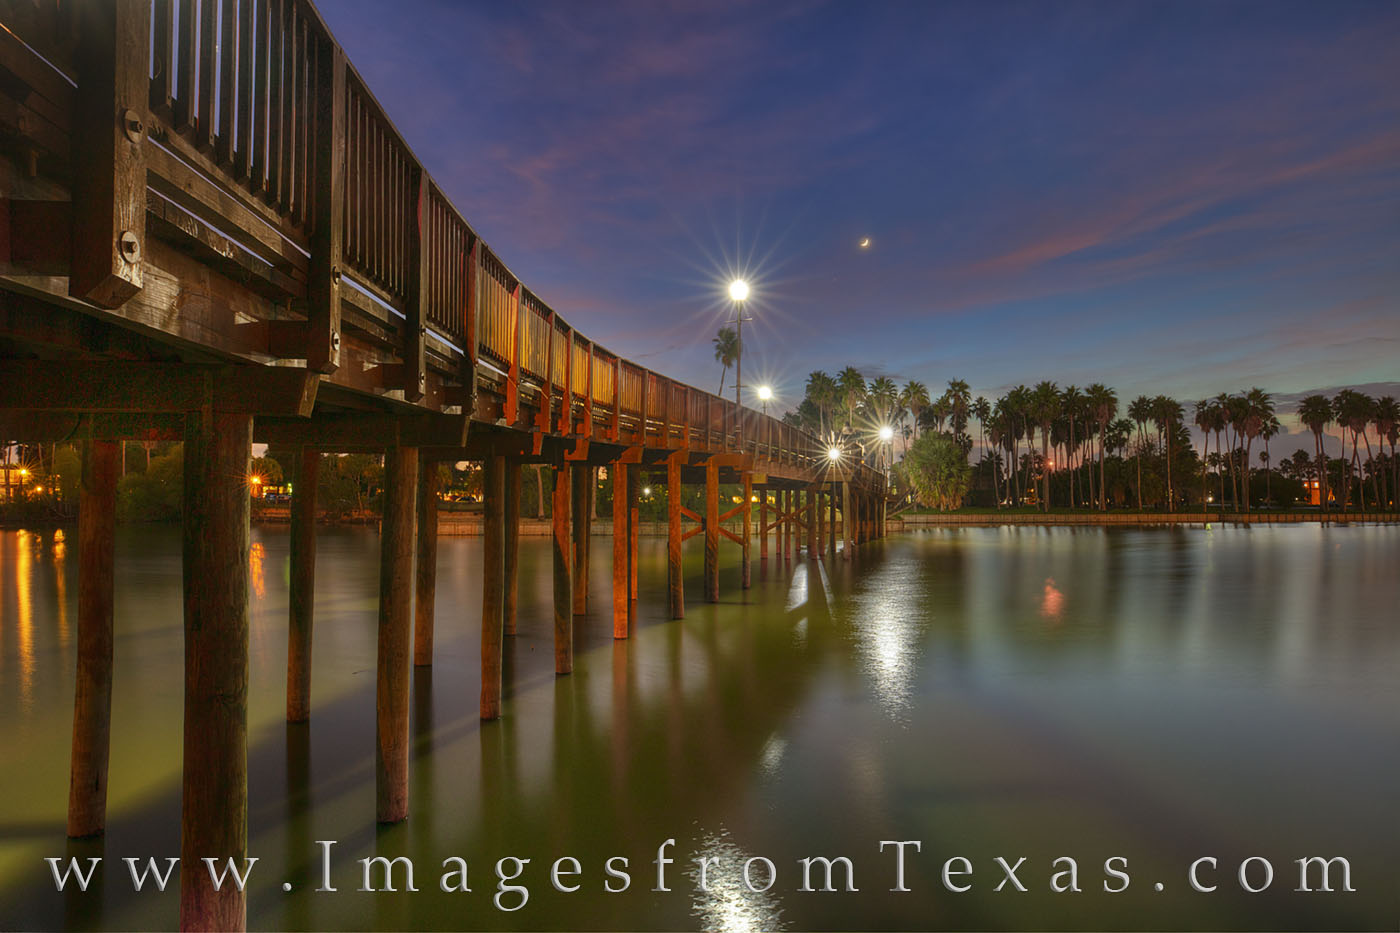 resaca, bridge, brownsville, rio grande, evening, moon, palm trees, night, footbridge, south texas, border town, southmost college, photo